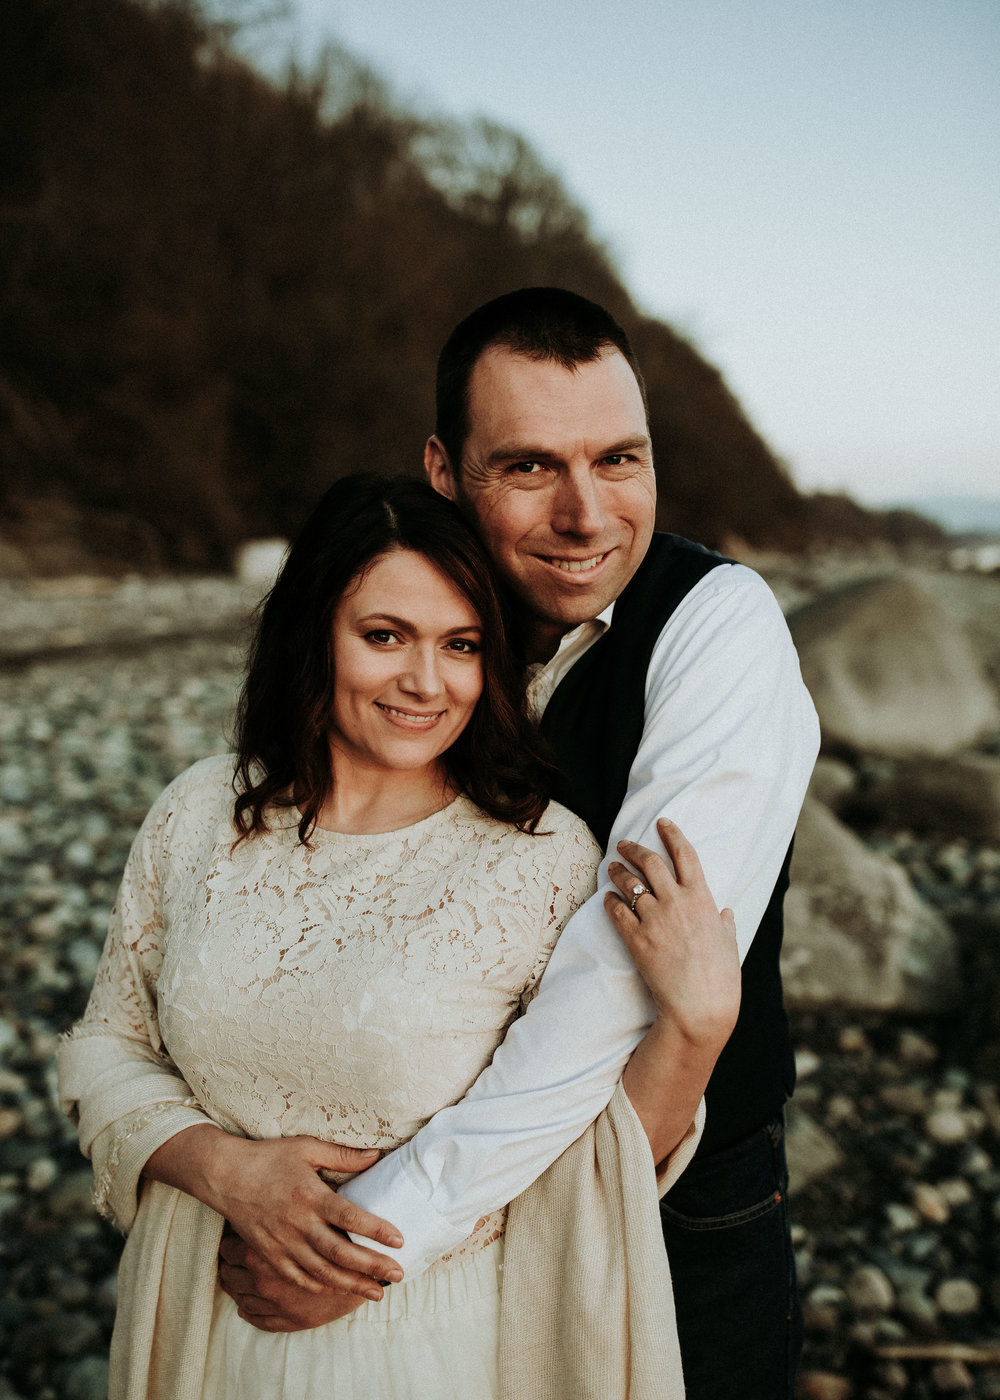 Engagement-Photographer-Bellingham-WA-Brianne-Bell-Photograpy-(Coral)-4.jpg